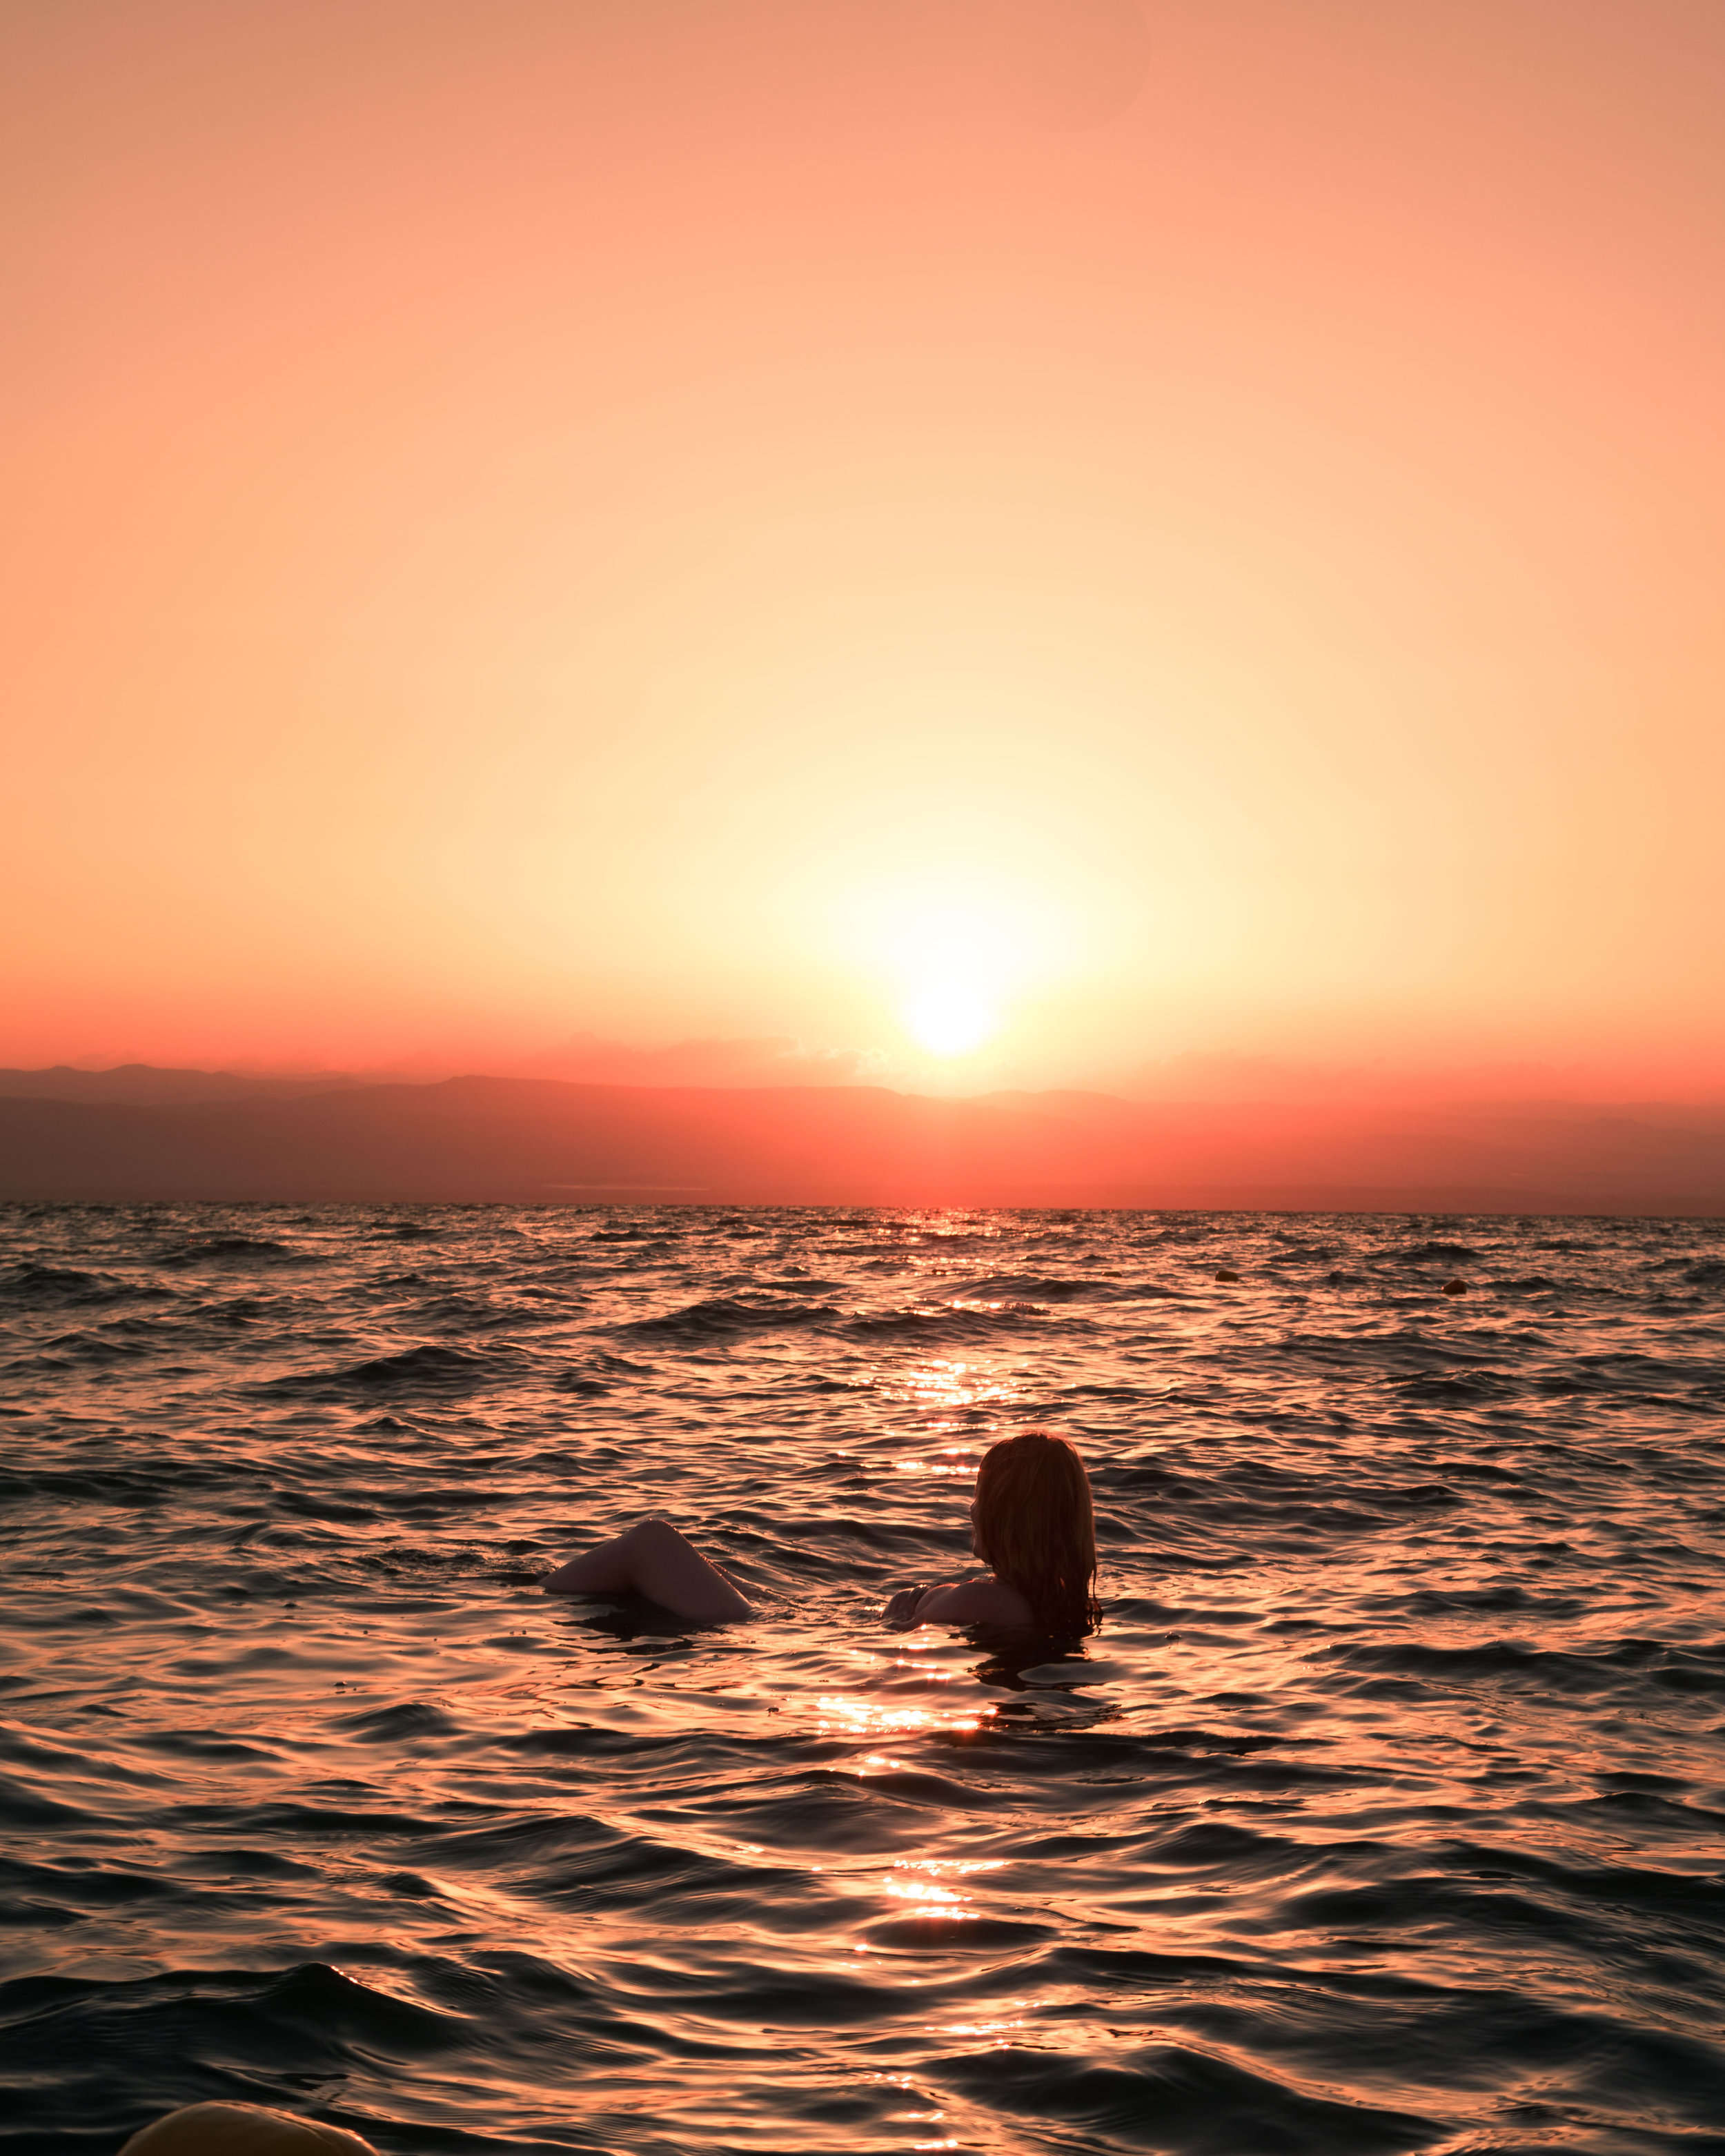 Instagrammable spots in Jordan - Floating in the Dead Sea